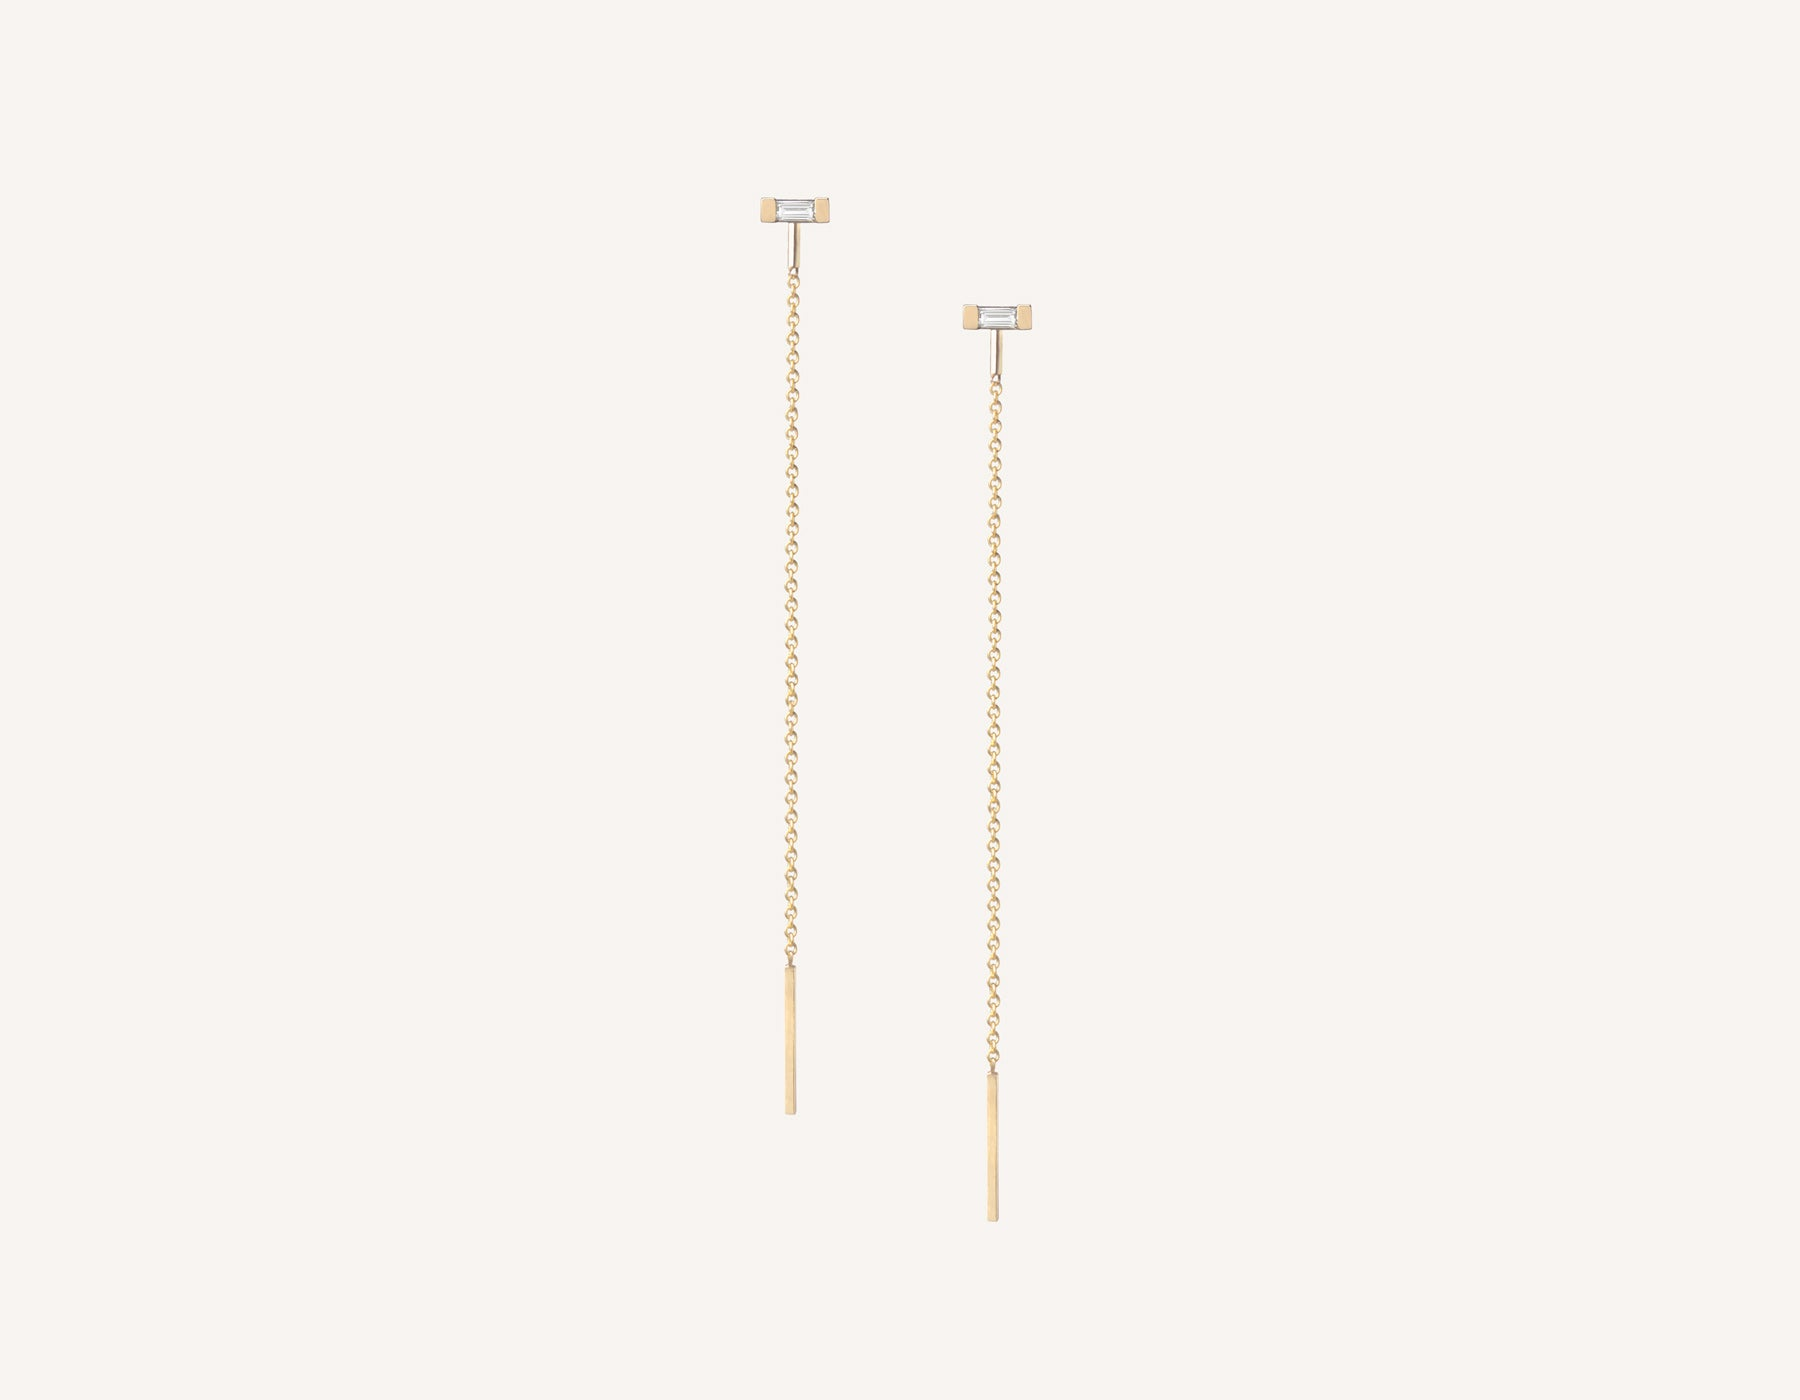 Vrai & oro minimalist modern 14k solid gold Baguette Diamond Line threader chain earrings, 14K Yellow Gold